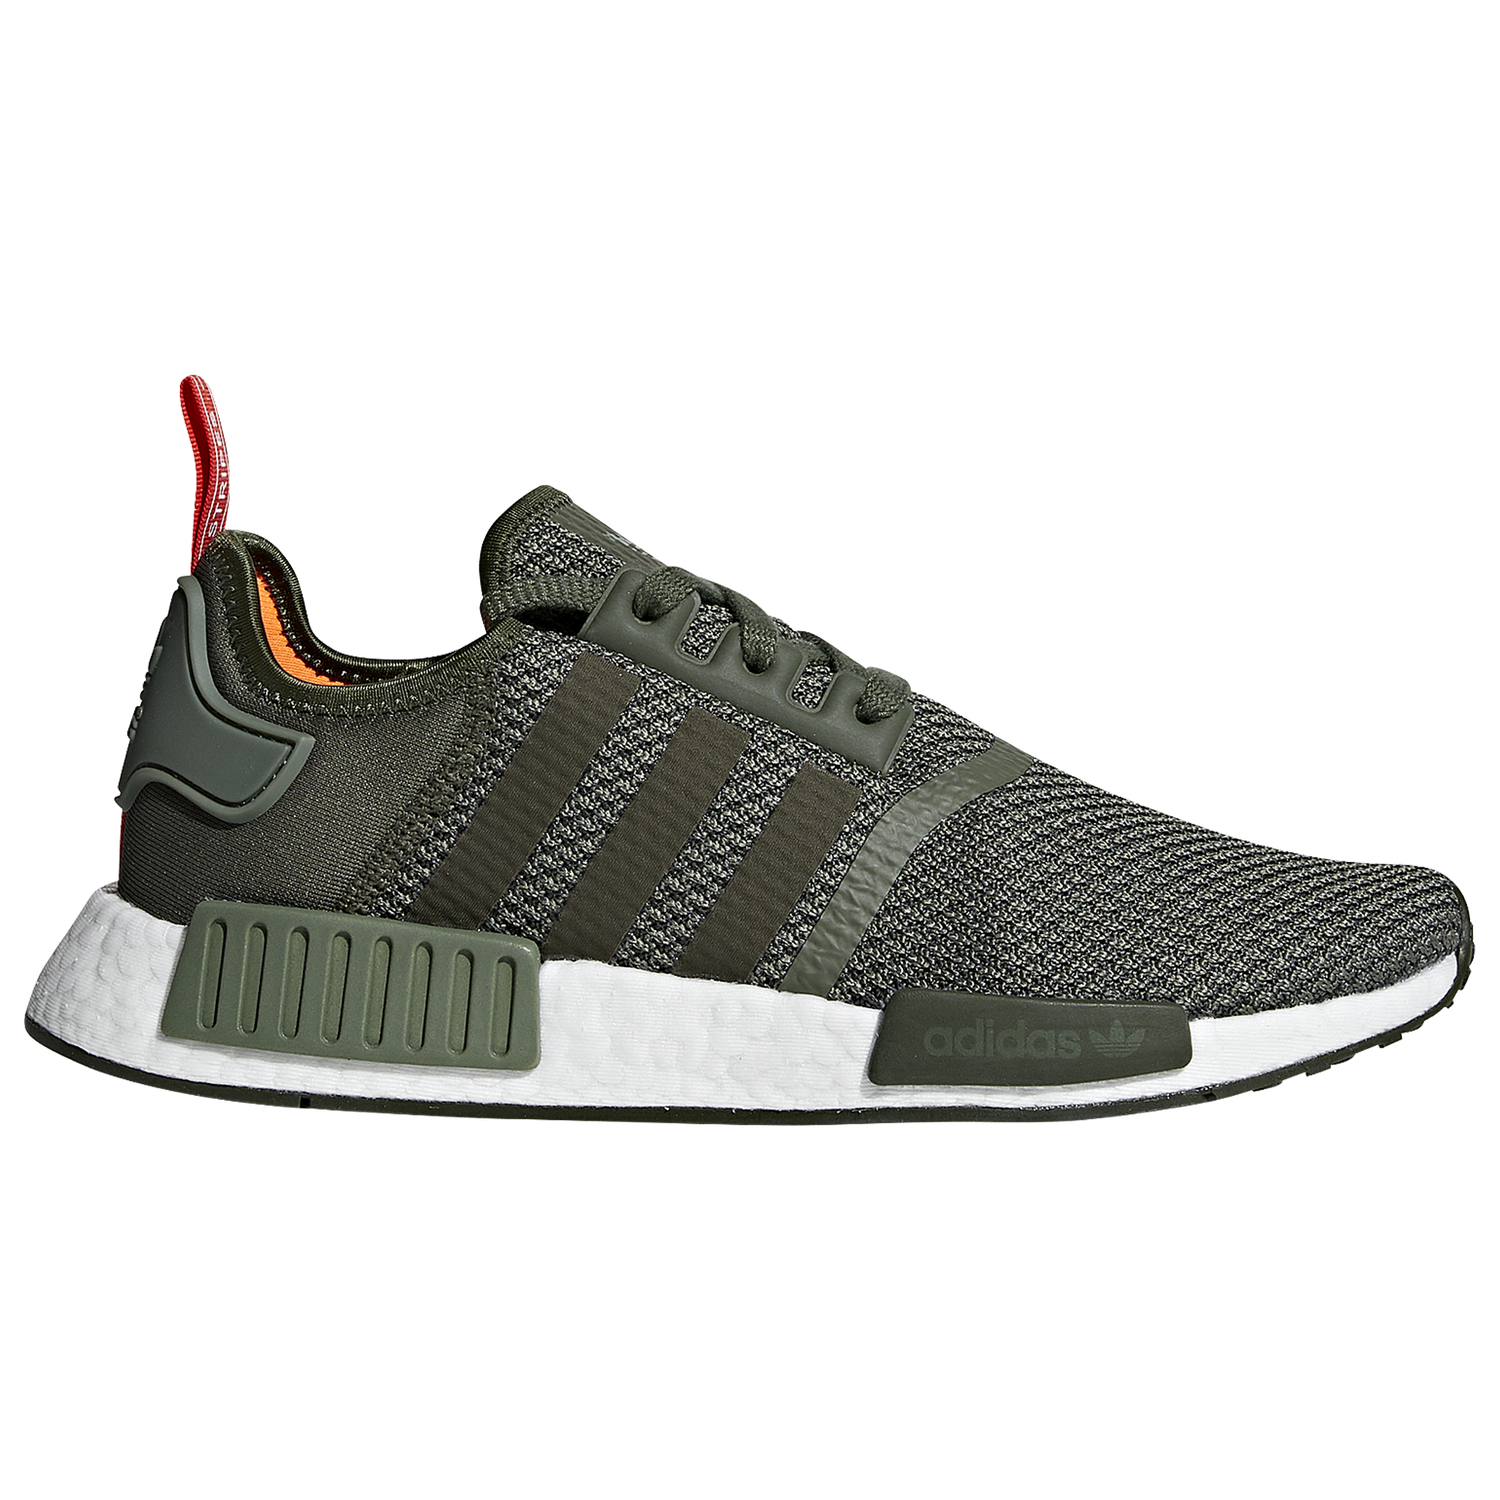 3132ca198 purchase green grey mens adidas nmd runner shoes 2ff2f 3274a